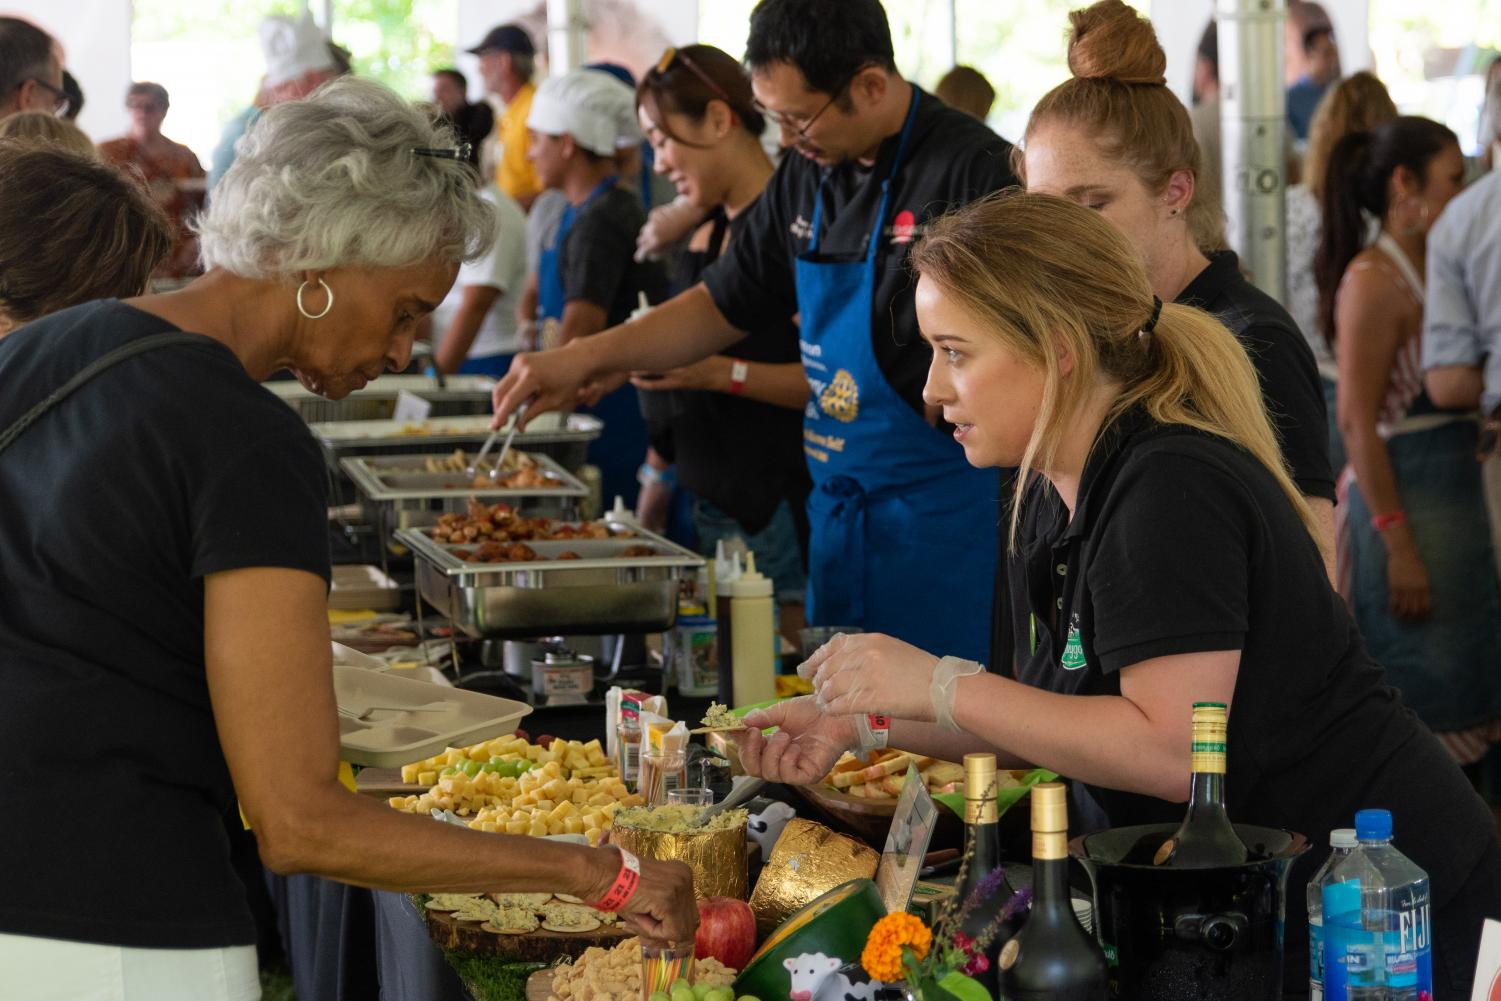 Community members get samples from various local food vendors at the fourth annual Taste of Evanston. This year's event primarily benefited local nonprofits Connections for the Homeless and Reba Place Development Corporation.